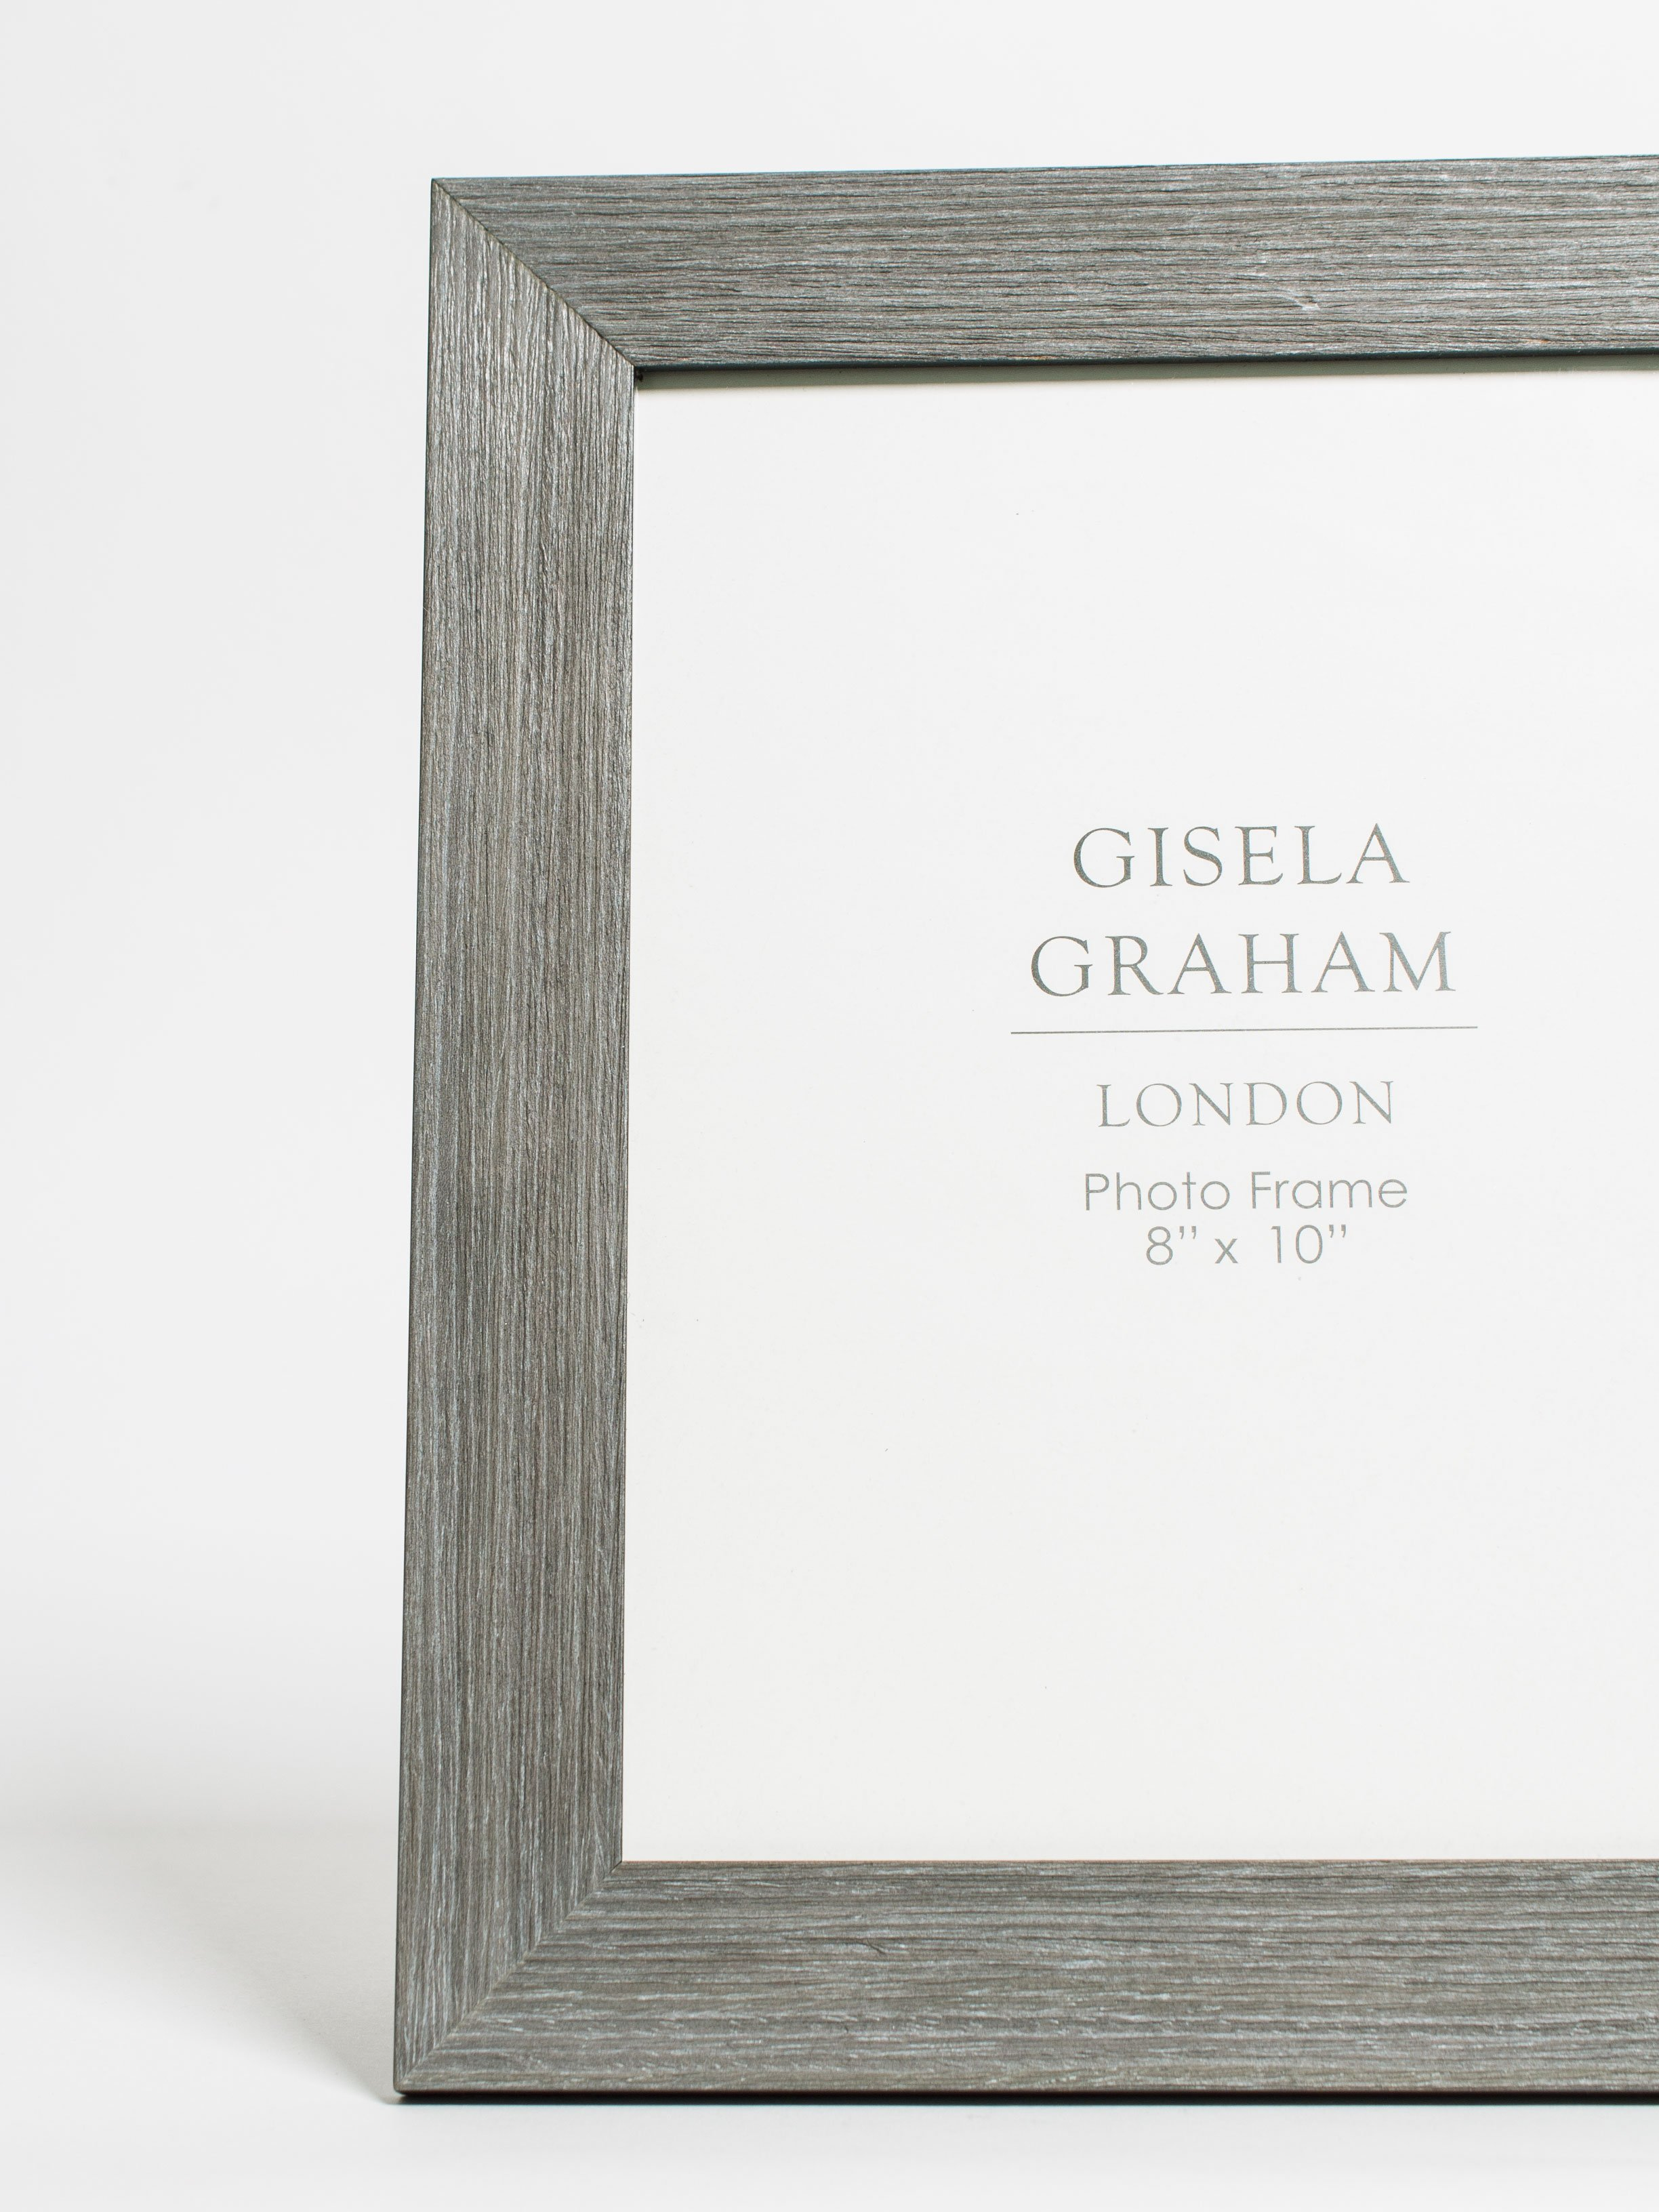 Gisela Graham Zebra Themed Scented Candle with Gift Box Friend`s Gift Idea